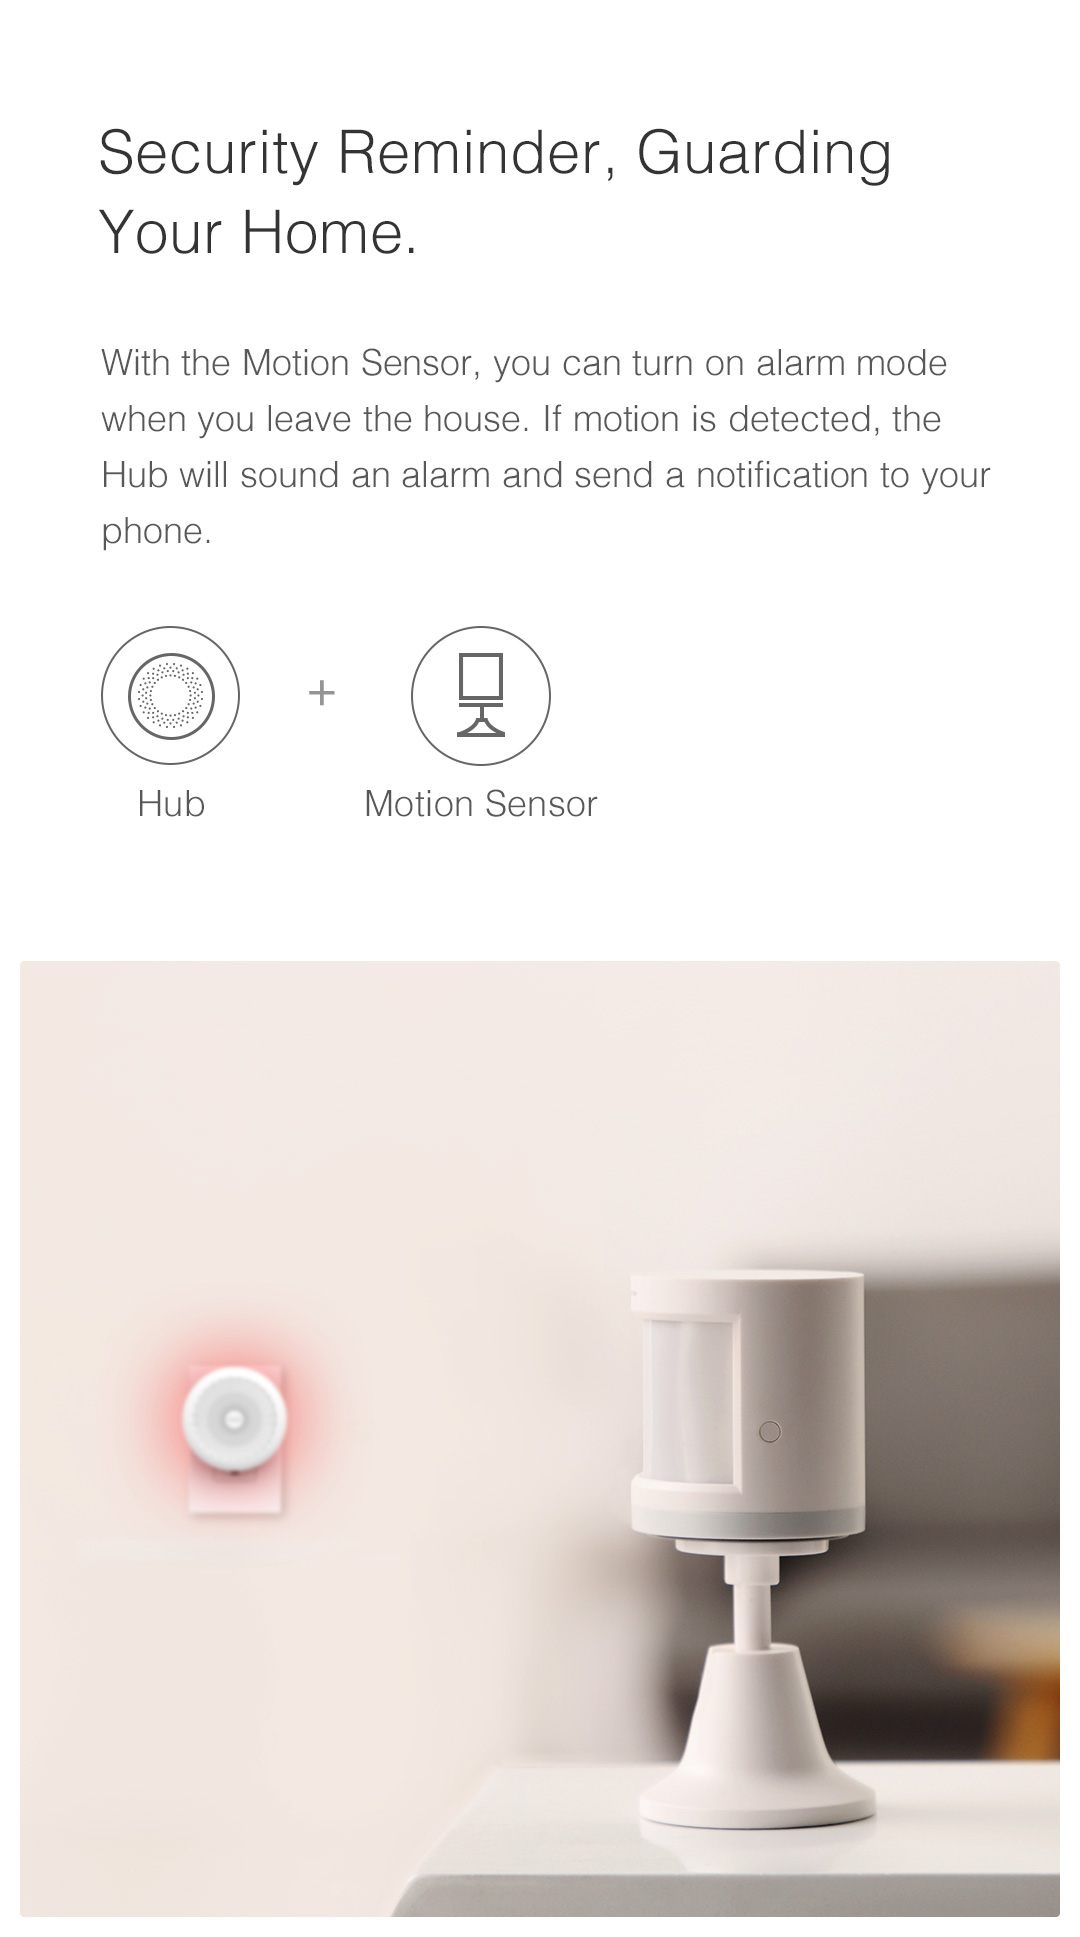 home security with Aqara gateway and wireless motion sensor to guard your home